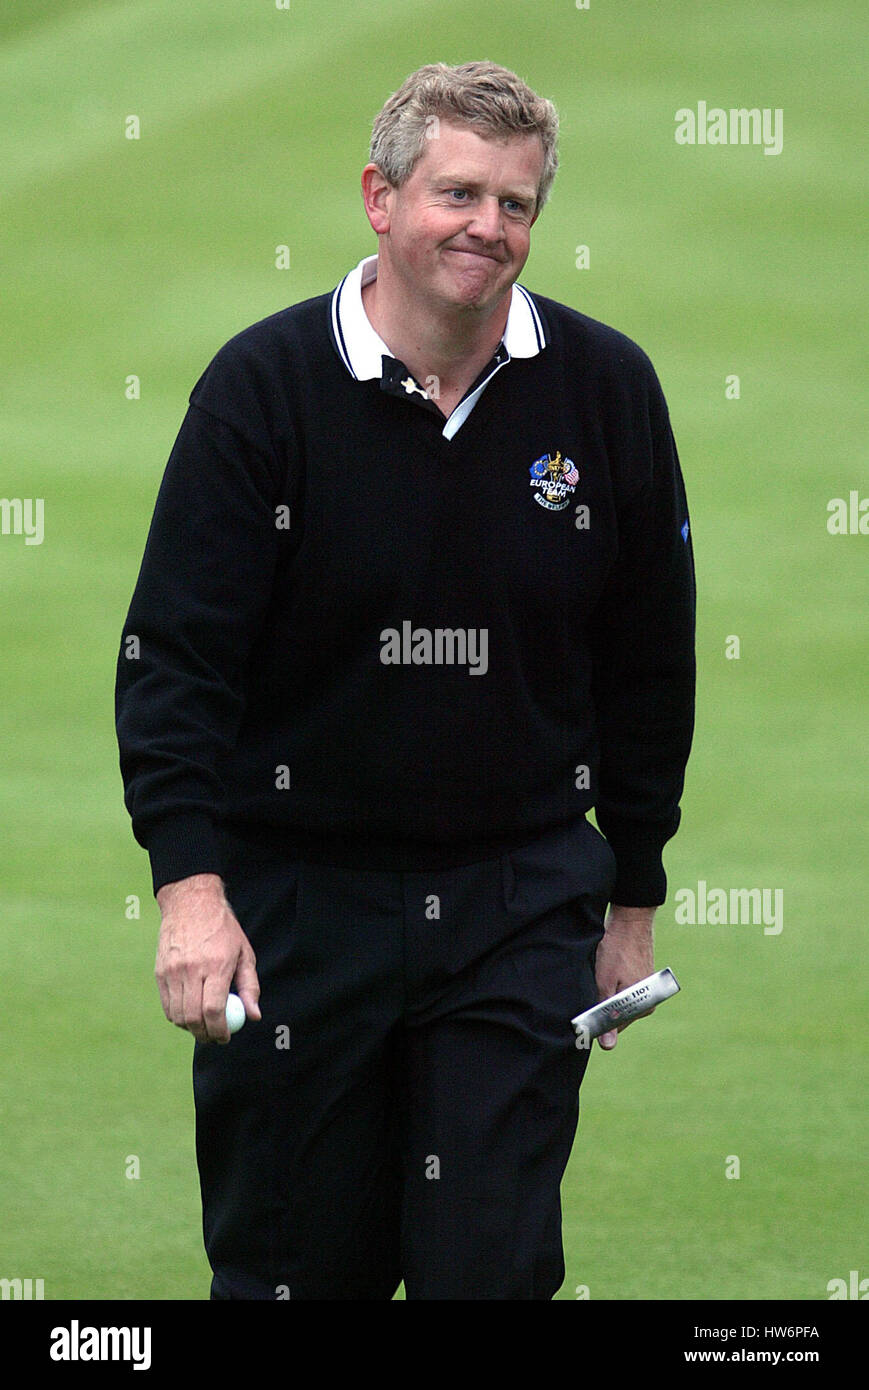 COLIN MONTGOMERIE RYDER CUP 02 10TH GREEN THE BELFRY SUTTON COLDFIELD BIRMINGHAM ENGLAND 28 September 2002 - Stock Image